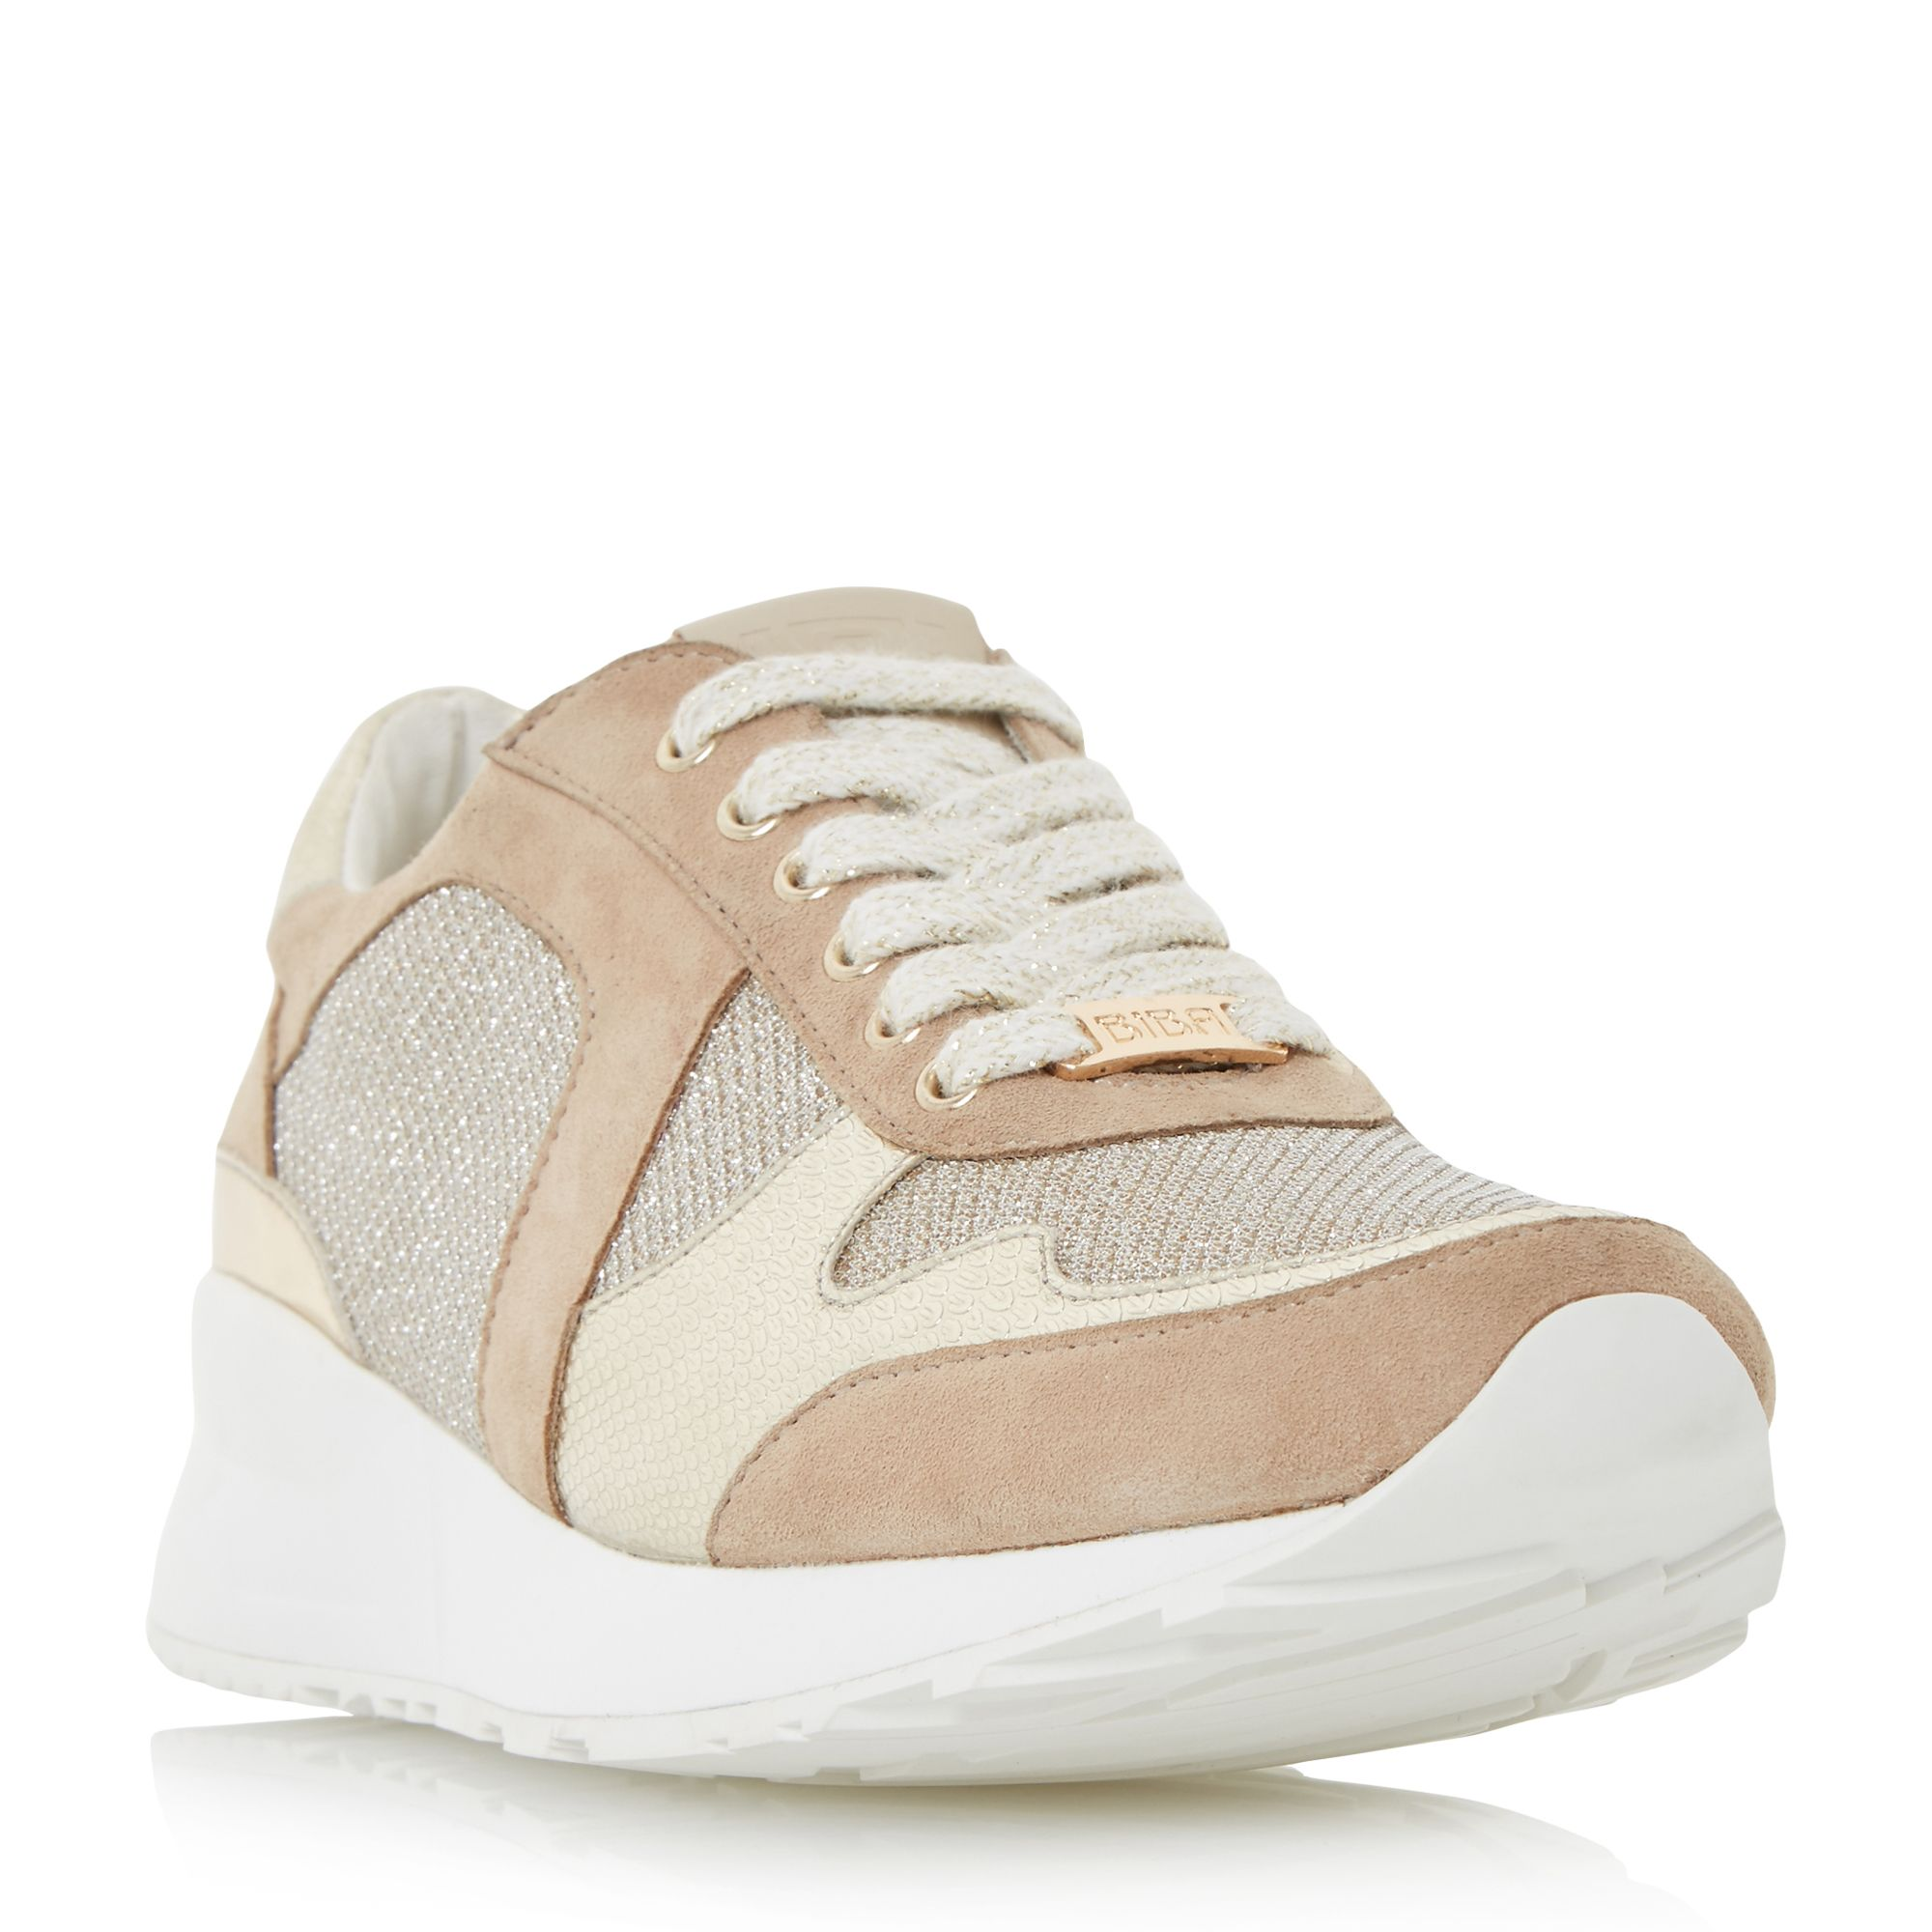 Biba Biba Emerin casual trainers, Metallic